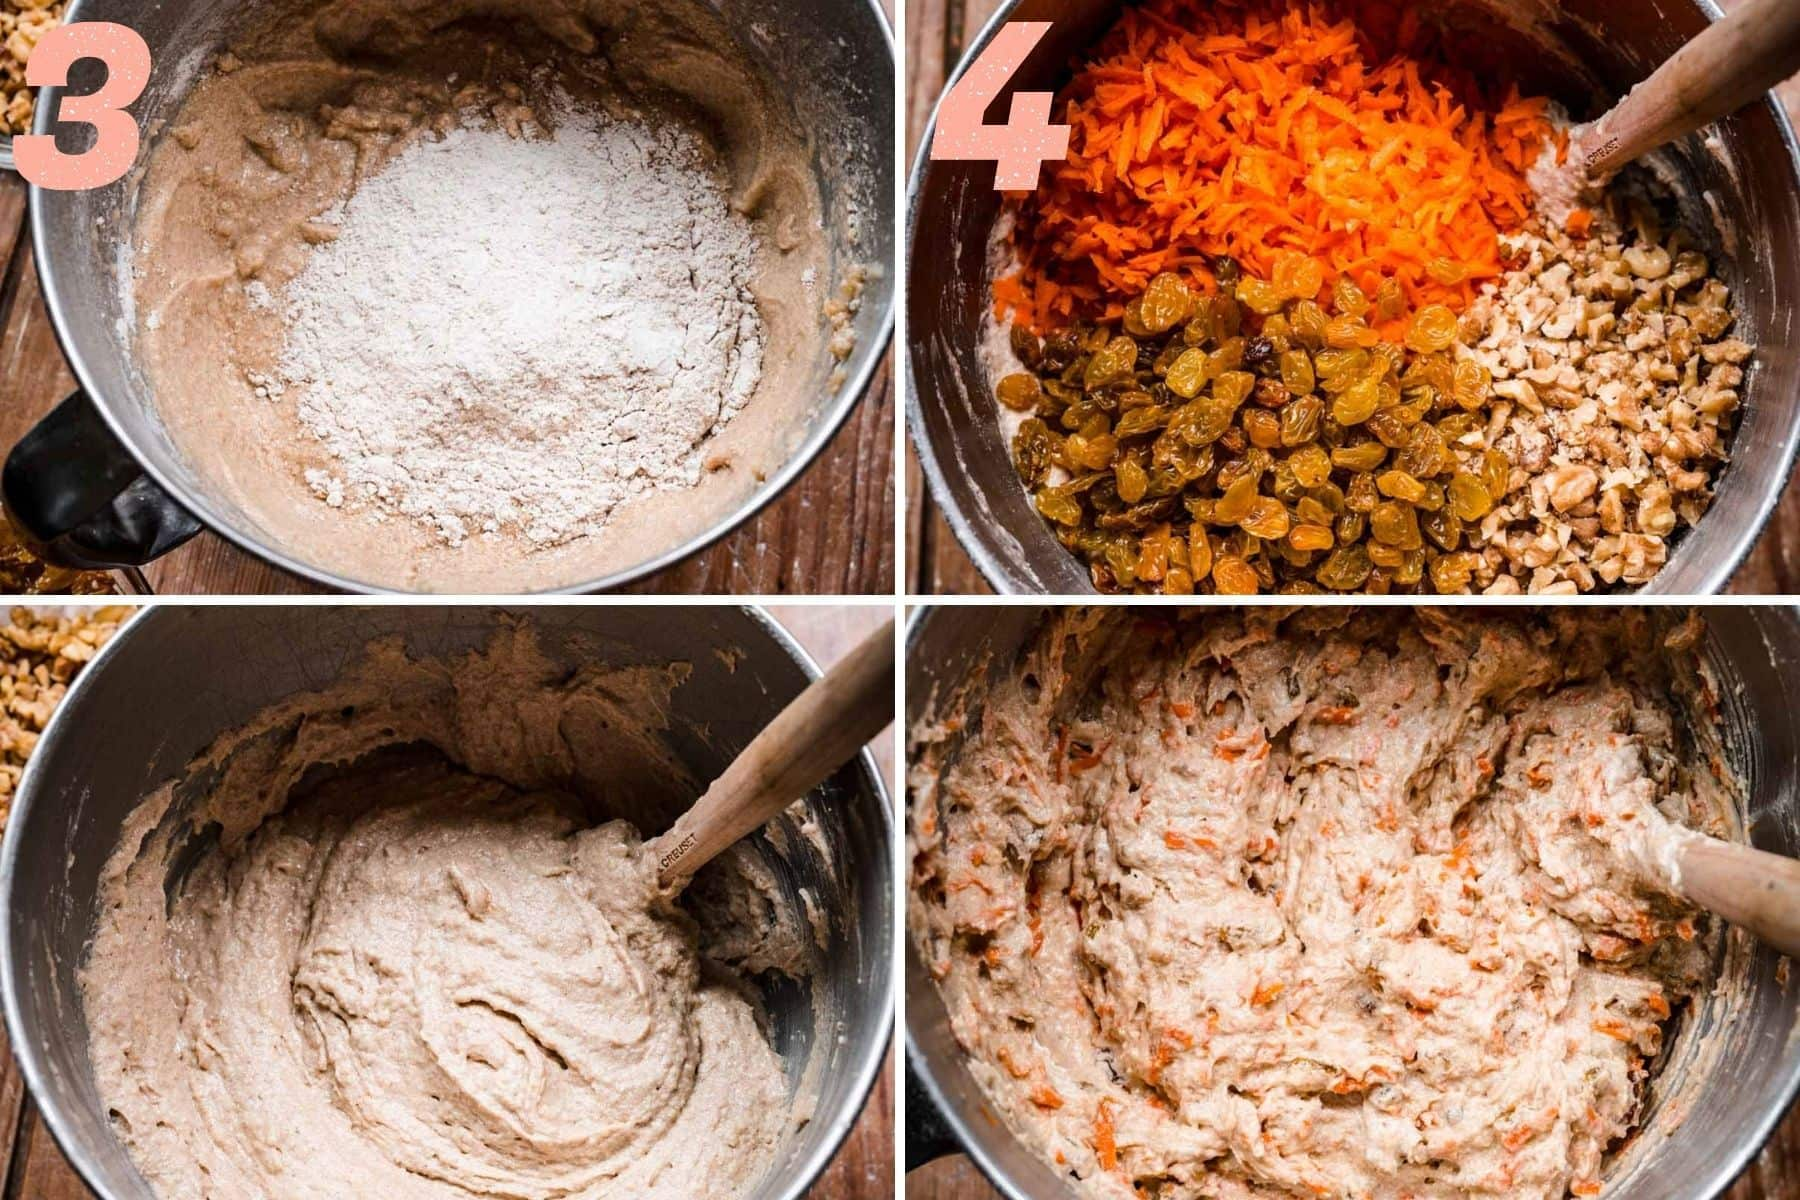 On the left: wet and dry ingredients being mixed together. On the right: carrots, walnuts, and raisins being mixed into batter.